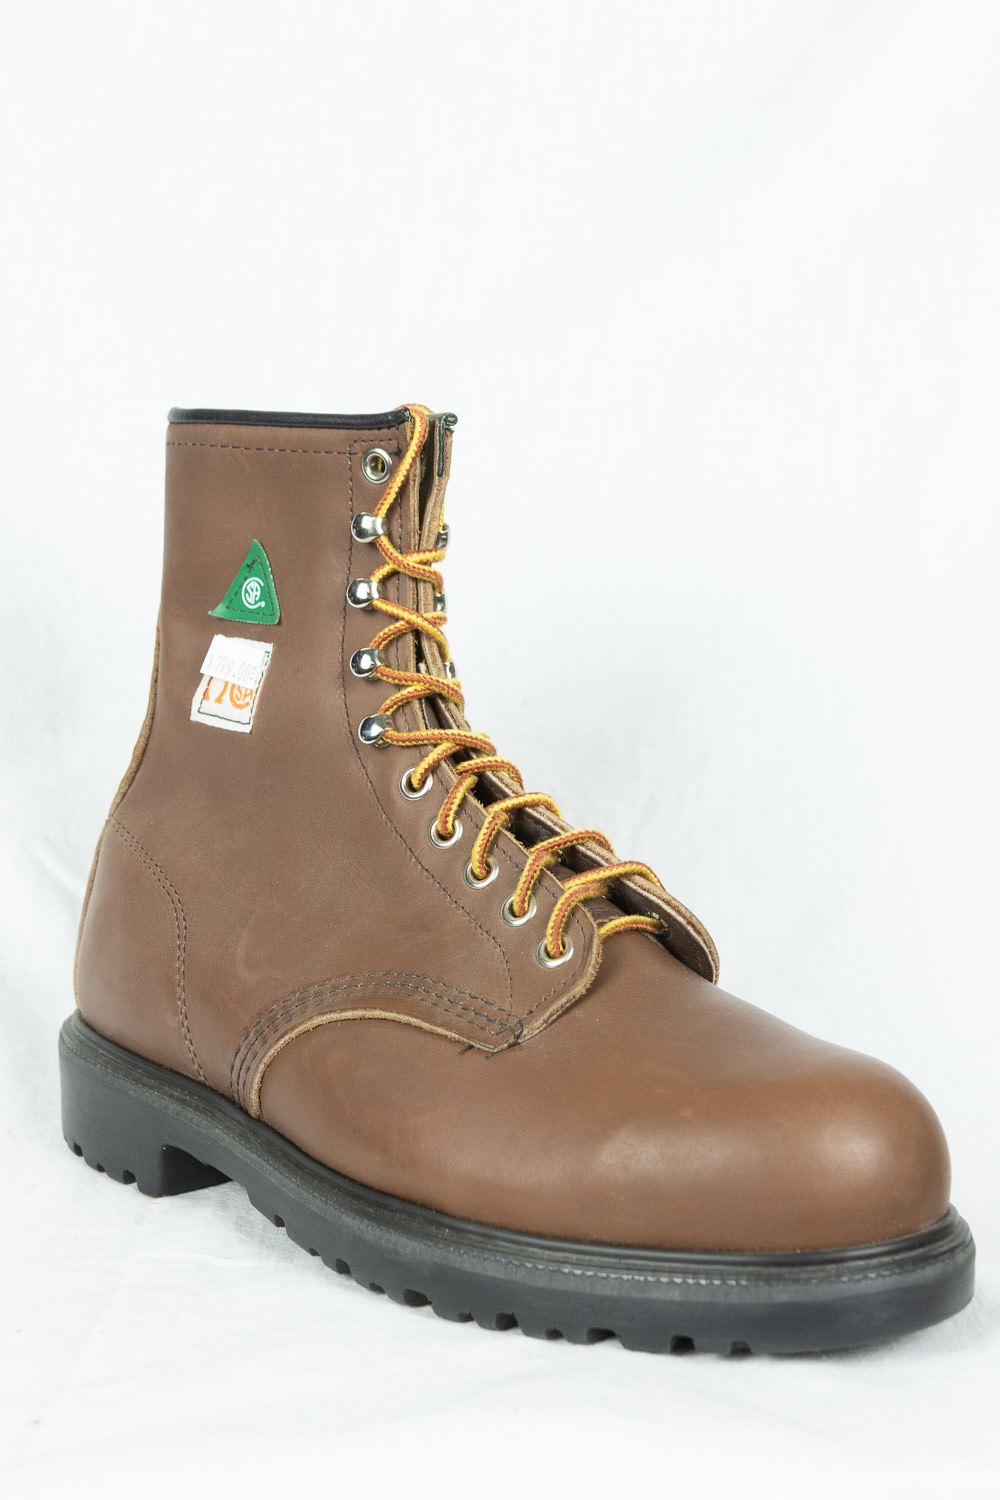 Red Wing Boots Steel Toe Men's ANSI Z41